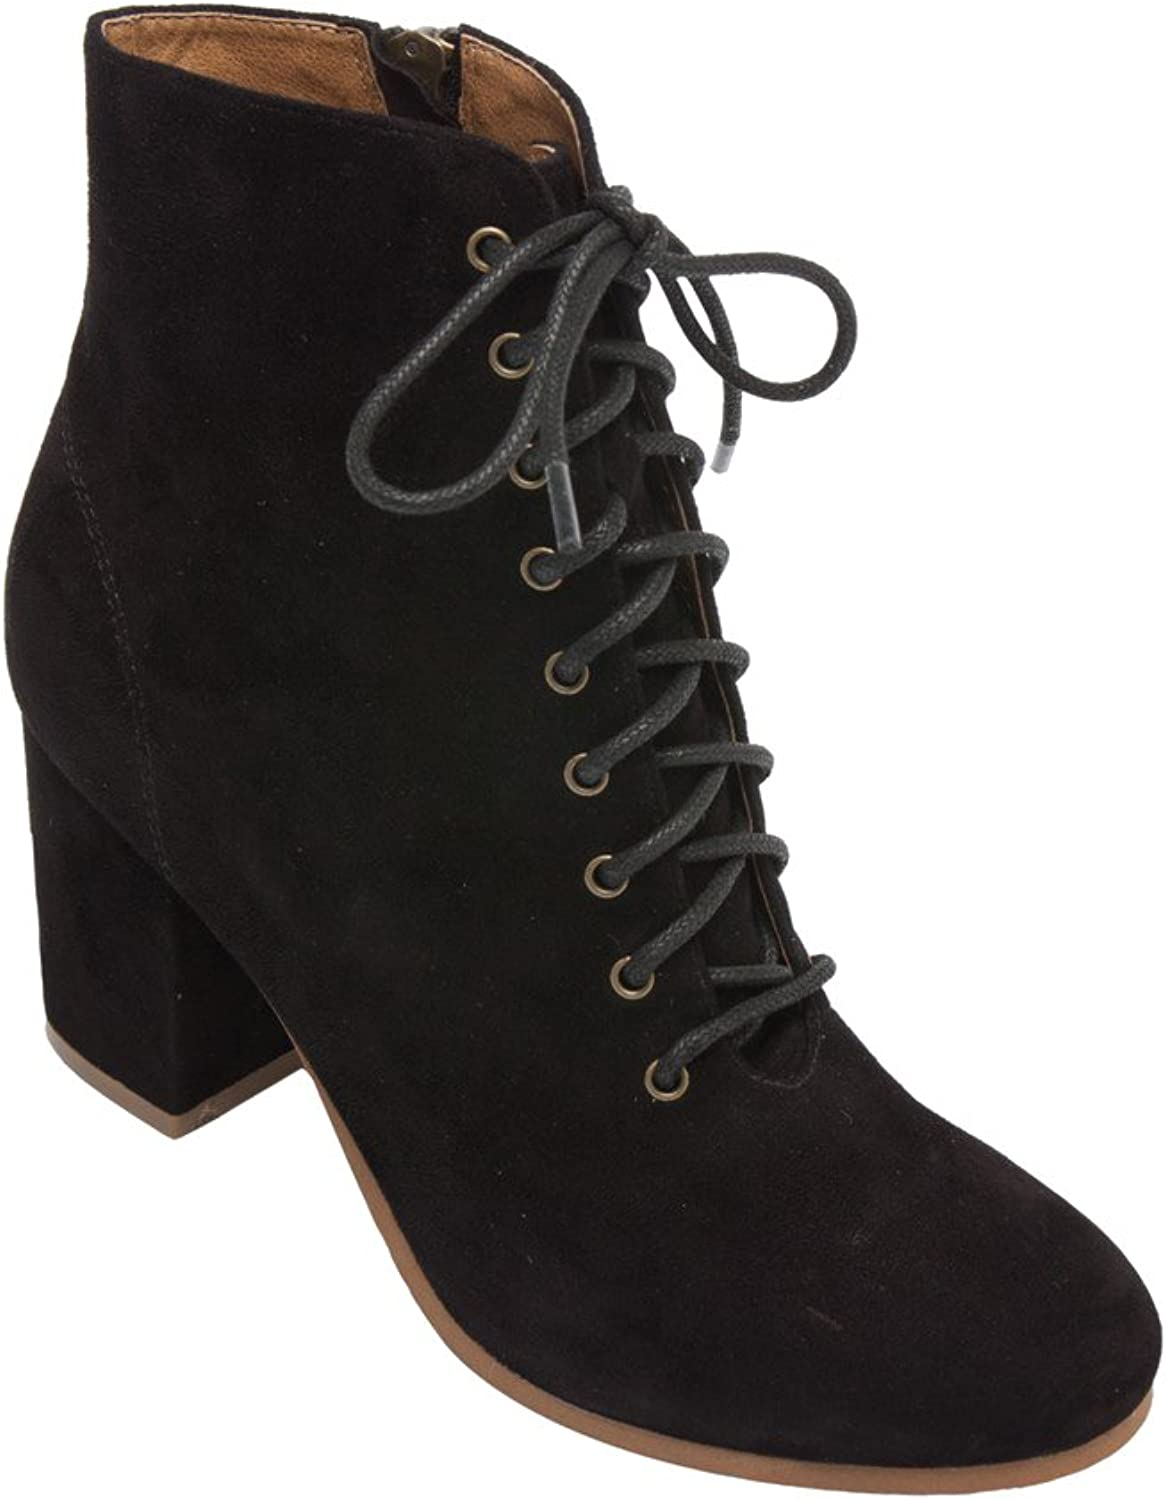 PIC PAY Benji - Women's Lace-Up Vintage Zipper Boot - Mid Height Wrapped Suede Leather Block Heel Ankle Bootie Black Suede 7.5M